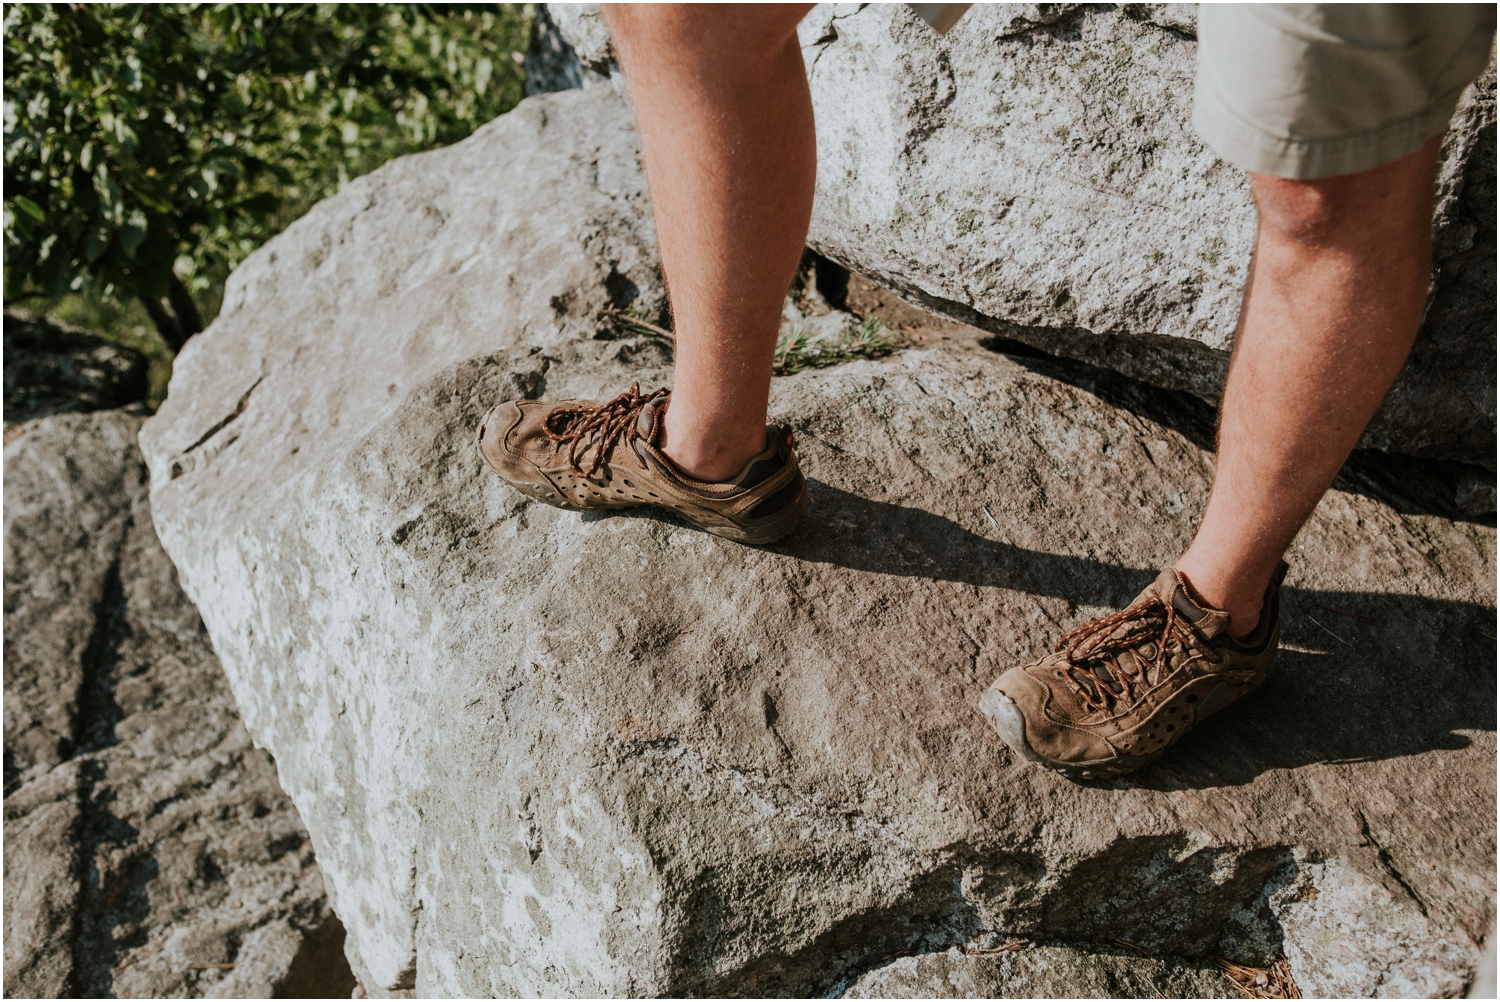 katy-sergent-photography-proposal-appalachian-trail-annapolis-rocks-adventurous-wedding-couples-intimate-elopement-hiking-backpacking-camping-photographer-johnson-city-tn-northeast-tennessee_0014.jpg